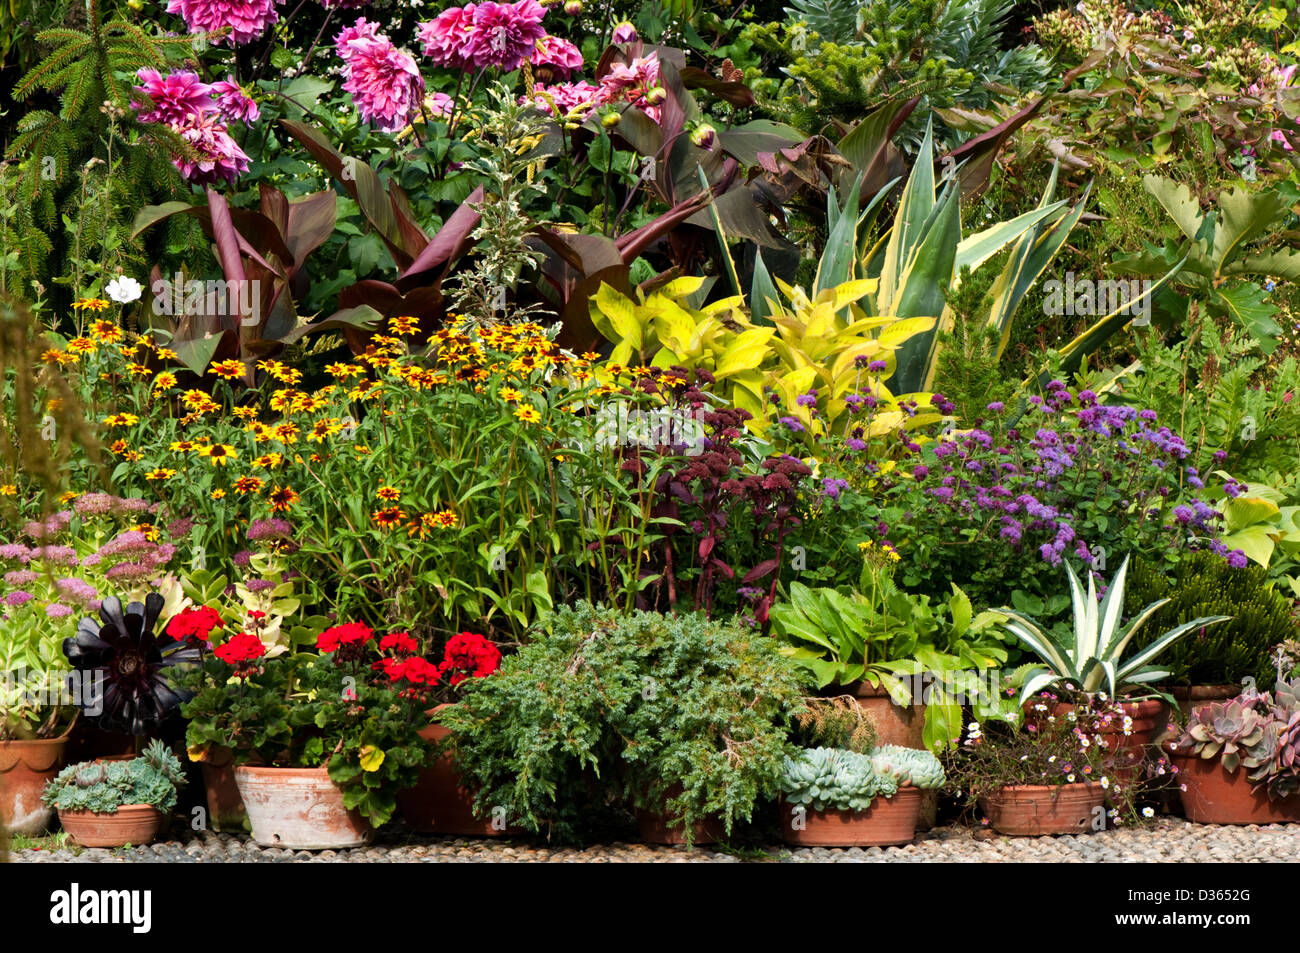 A group of potted plants of different varieties displayed on the ground. - Stock Image